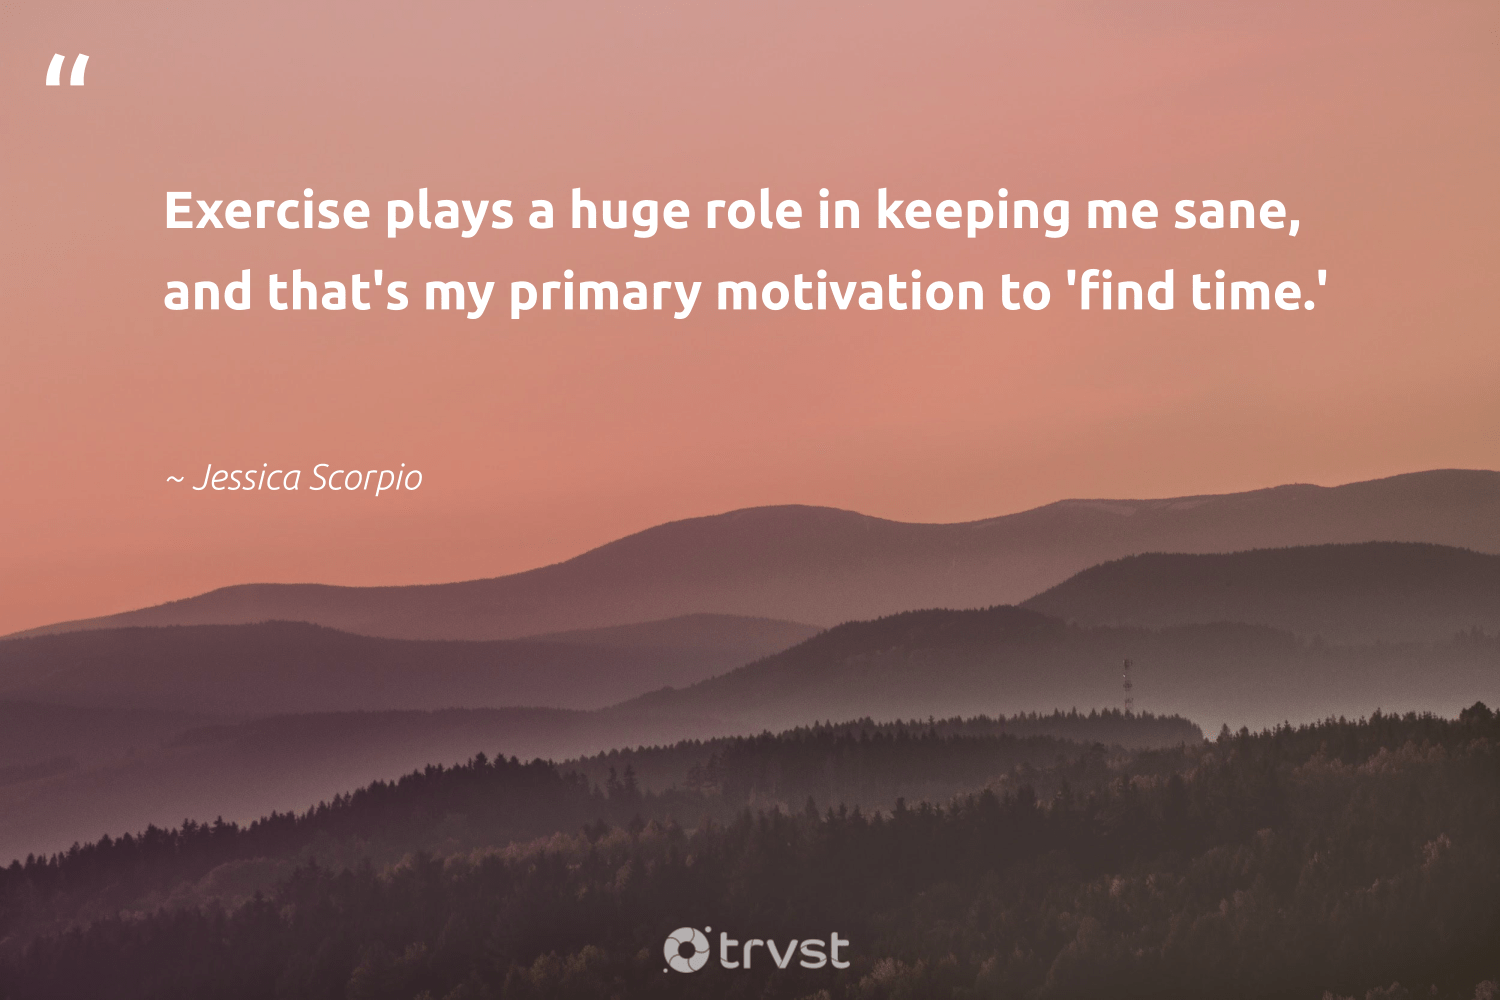 """Exercise plays a huge role in keeping me sane, and that's my primary motivation to 'find time.'""  - Jessica Scorpio #trvst #quotes #mindset #motivation #exercise #meditation #begreat #health #planetearthfirst #meditate #nevergiveup #changemakers"